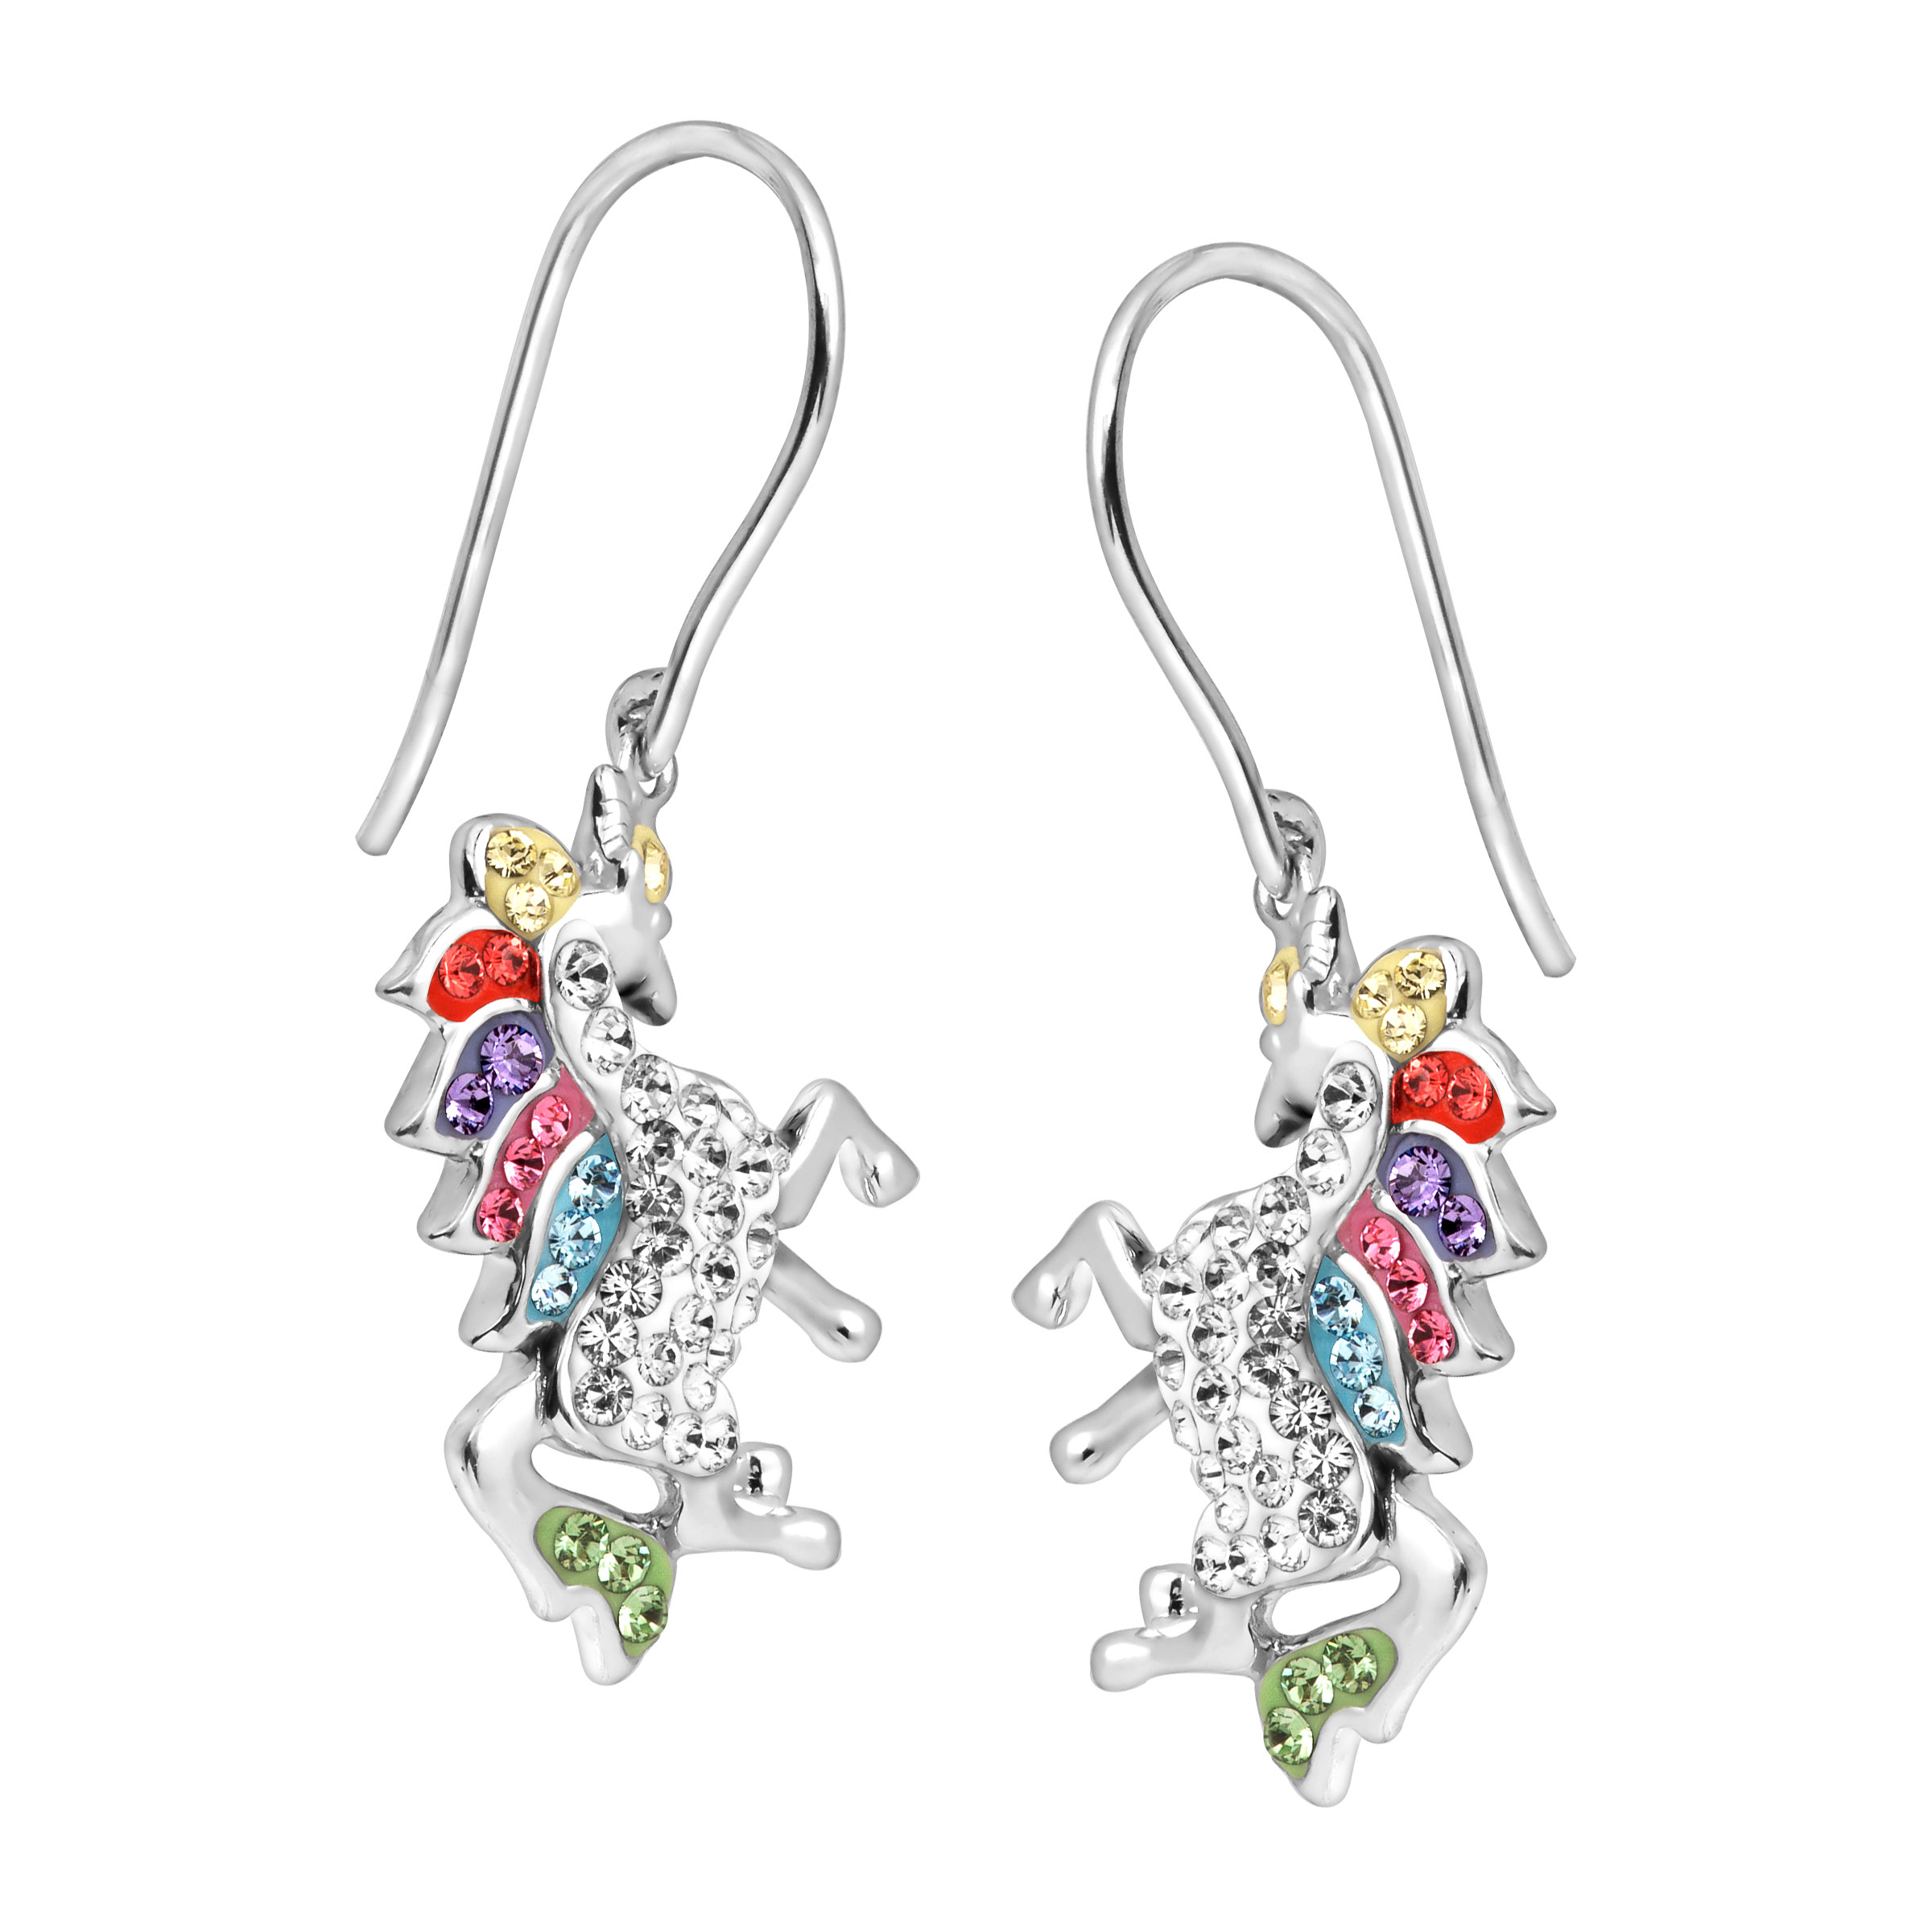 5cb20a9e6 Luminesse - Unicorn Drop Earrings with Swarovski Crystals in Sterling Silver  - Walmart.com